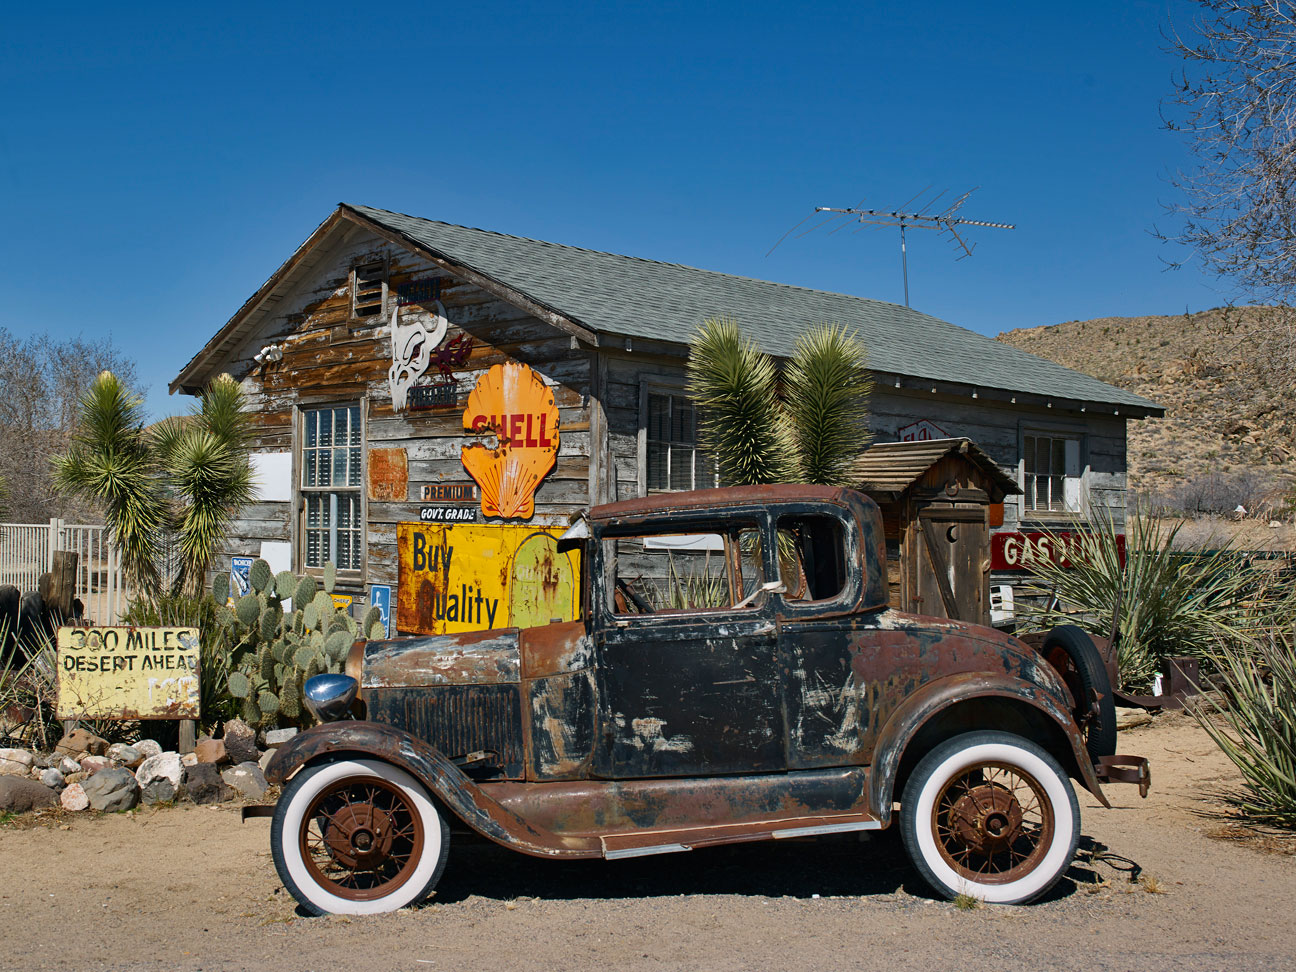 OLD ROUTE 66, HACKBERRY STATION, ARIZONA